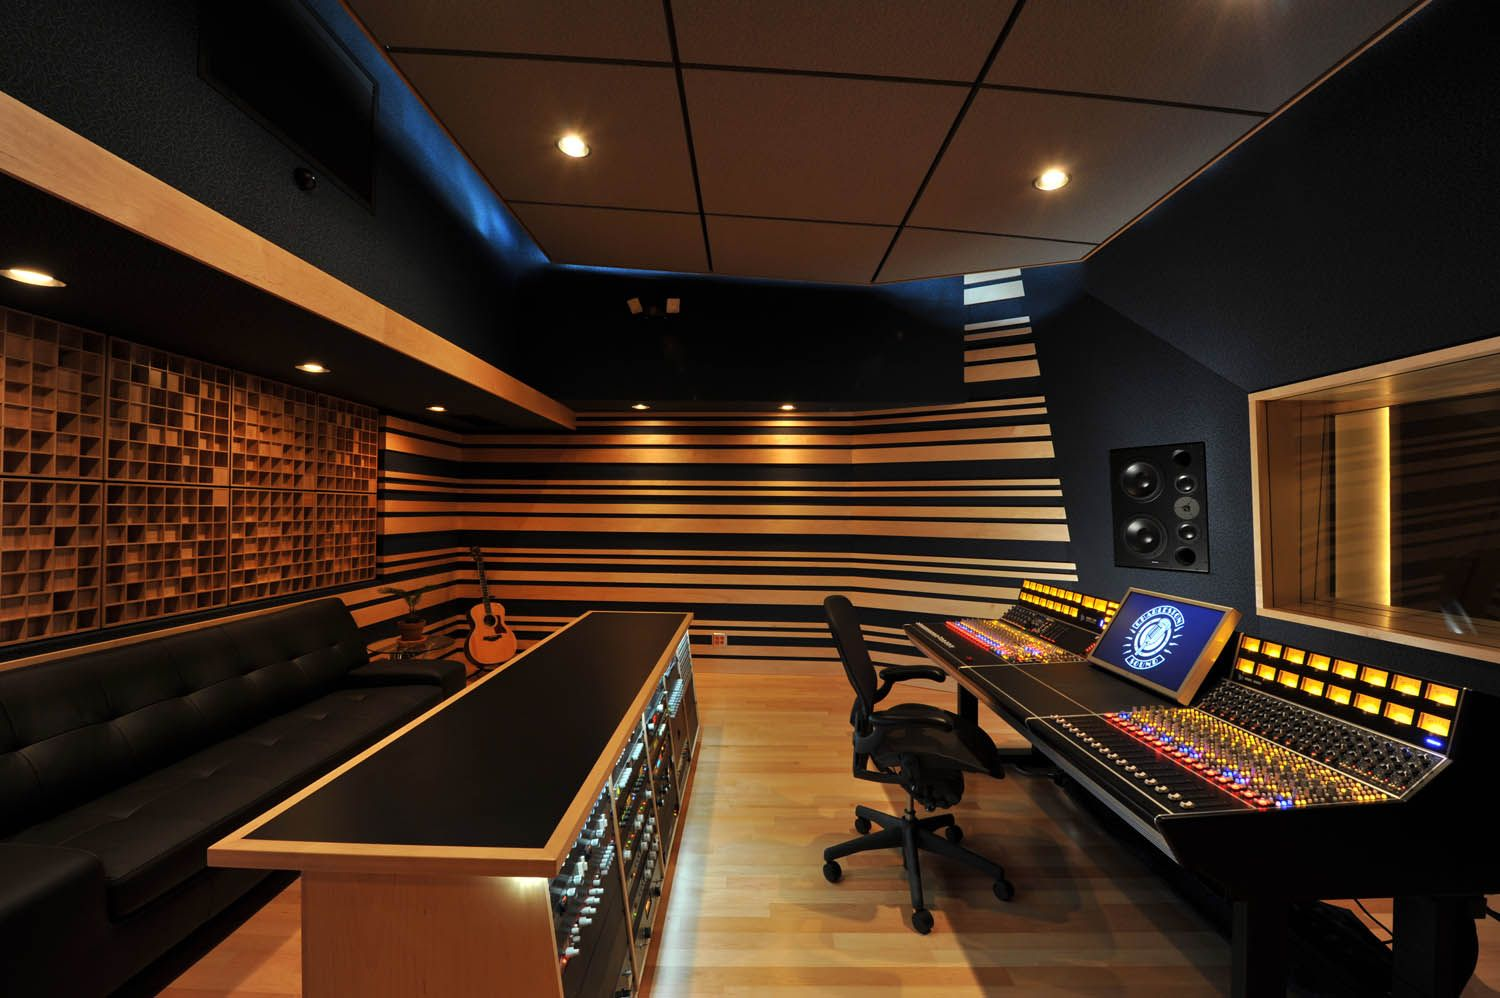 Home Music Studio Design Ideas musically inspired wall decals Diy Sound Proof Panels Step By Step Recording Studio Designhome